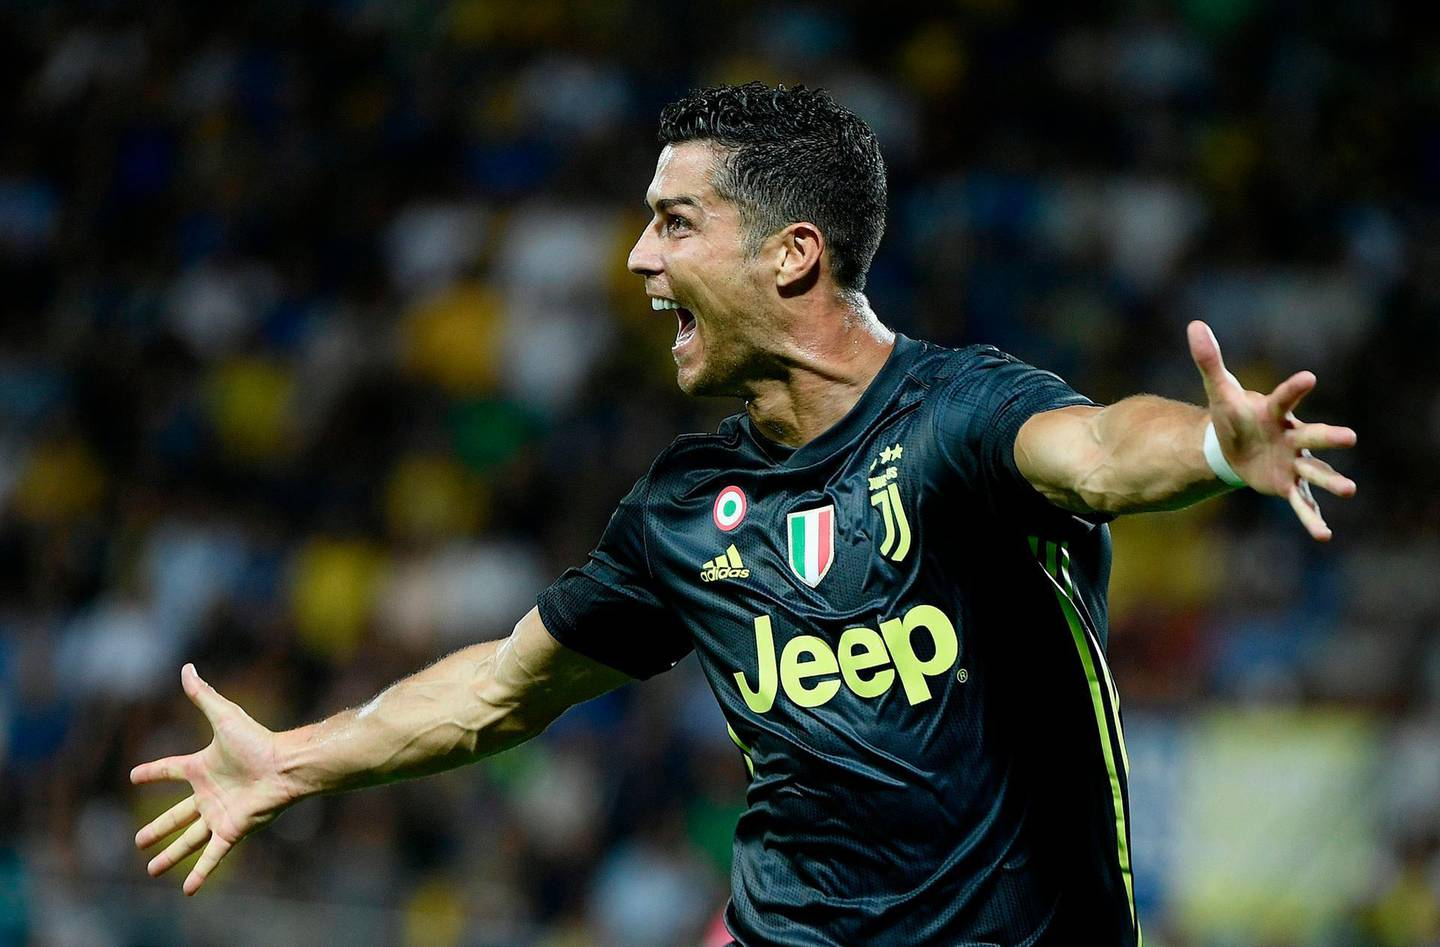 Juventus' Portuguese forward Cristiano Ronaldo celebrates after he scored during the Italian Serie A football match between Frosinone and Juventus Turin on September 23, 2018 at the Benito-Stirpe Stadium in Frosinone.  / AFP / Filippo MONTEFORTE